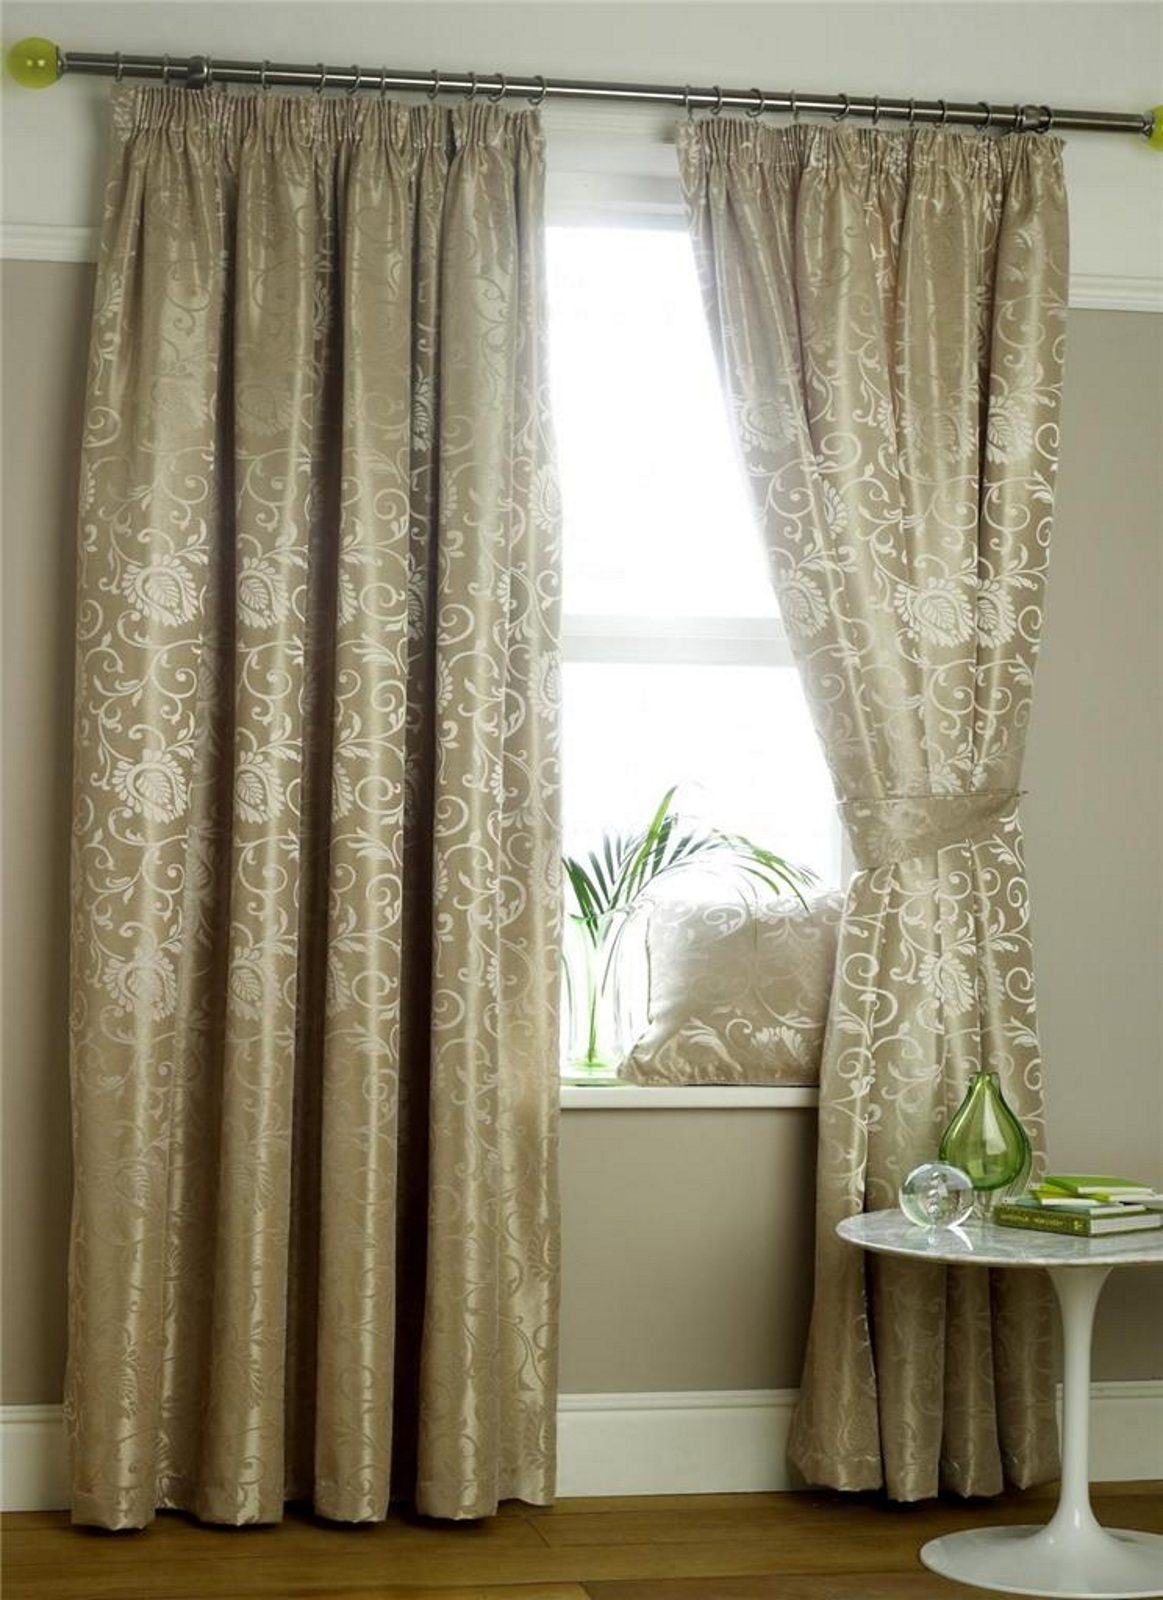 New luxury mirabel floral jacquard lined pencil pleat curtains panel voiles ebay - Captain america curtains ...